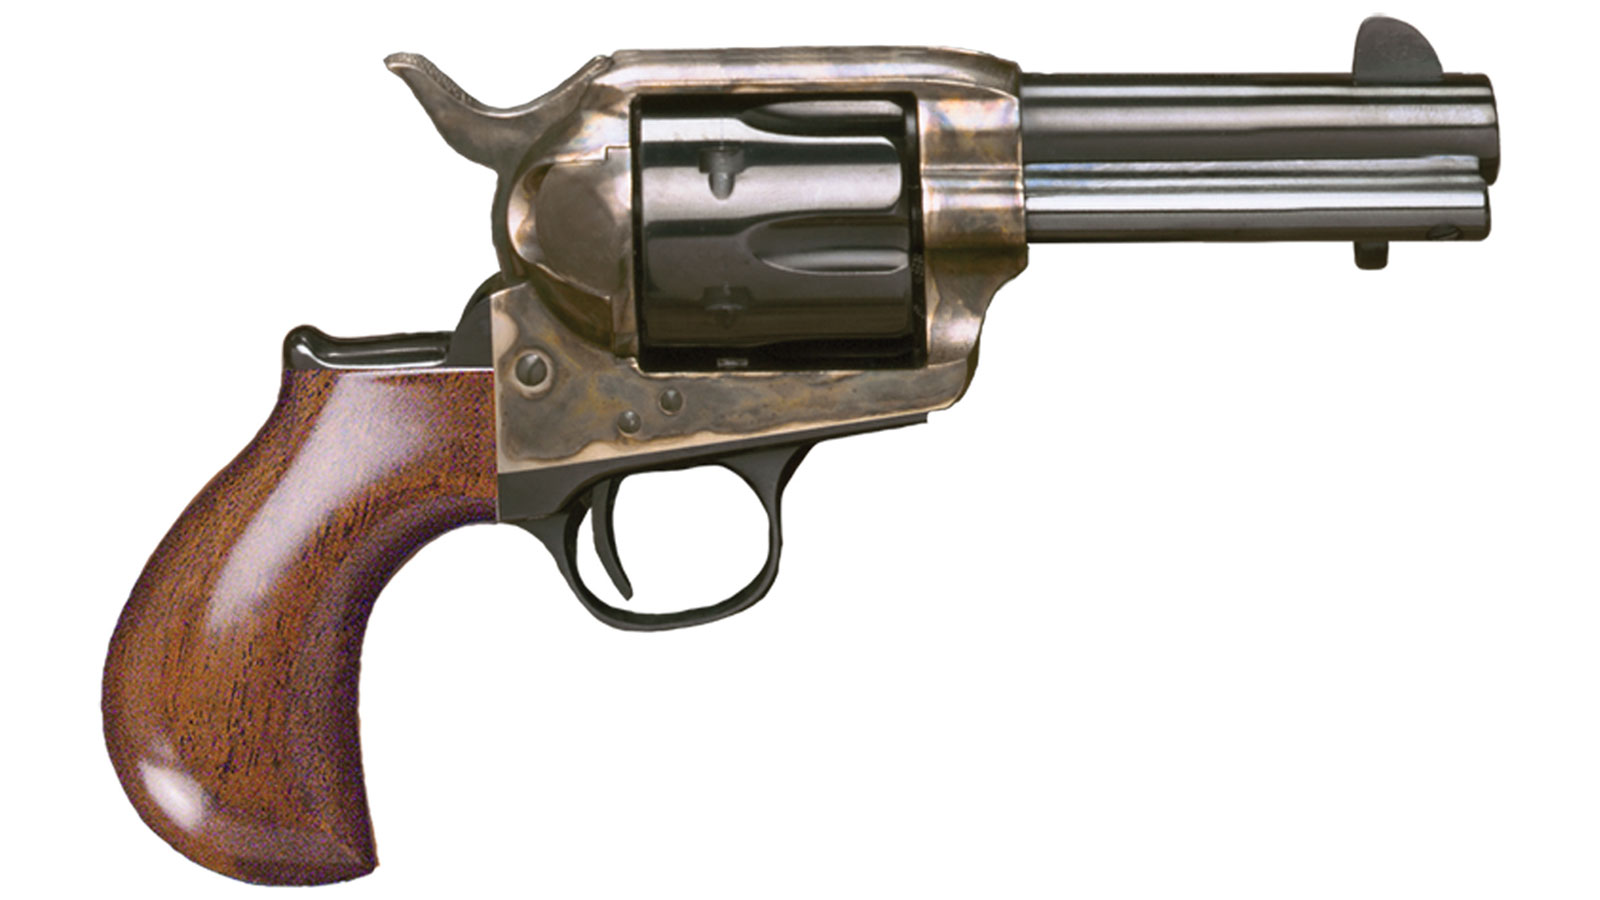 Cimarron CA346 Thunderer Model P Revolver 45 Colt (LC) 3.5 Walnut Grip Blued in.